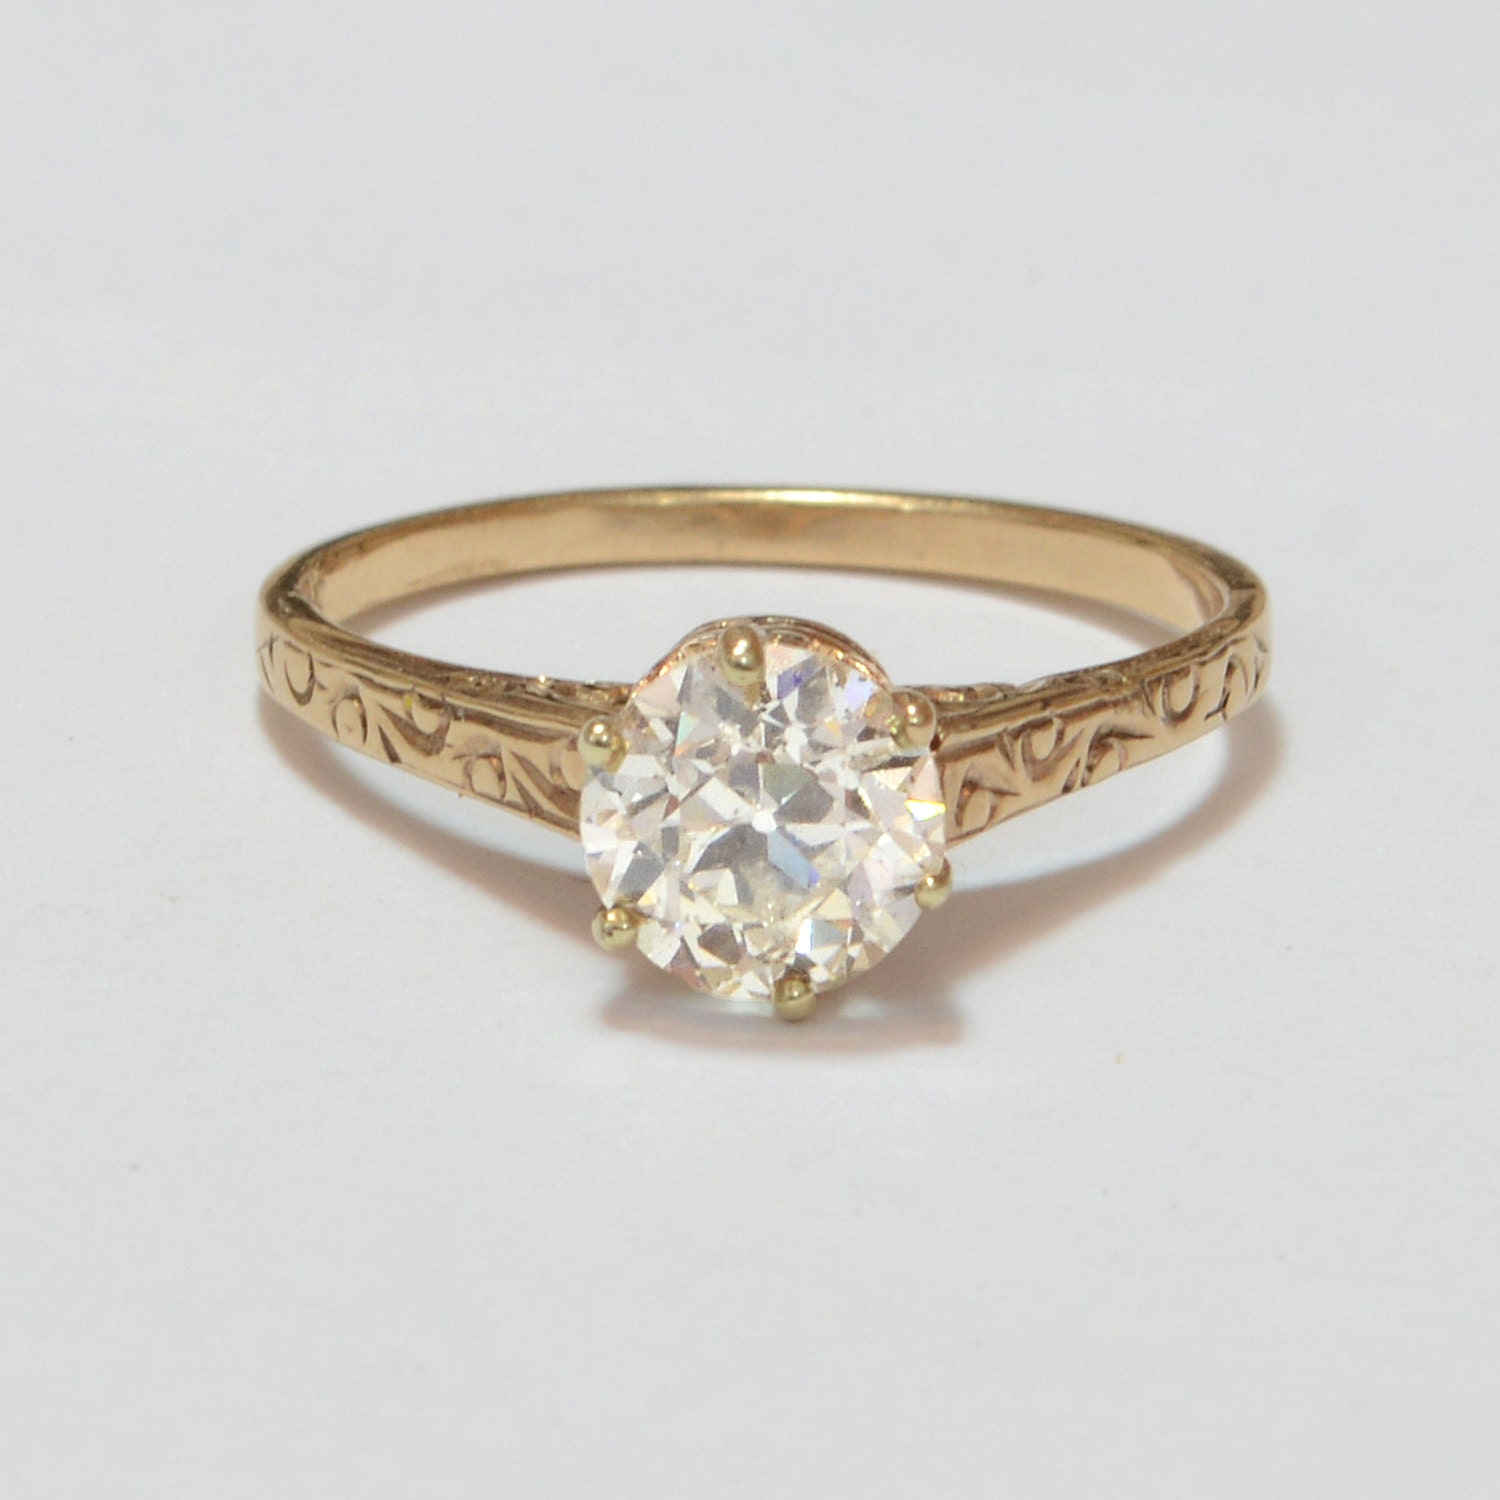 Antique Engagement Ring 10k Rose Gold with by SITFineJewelry